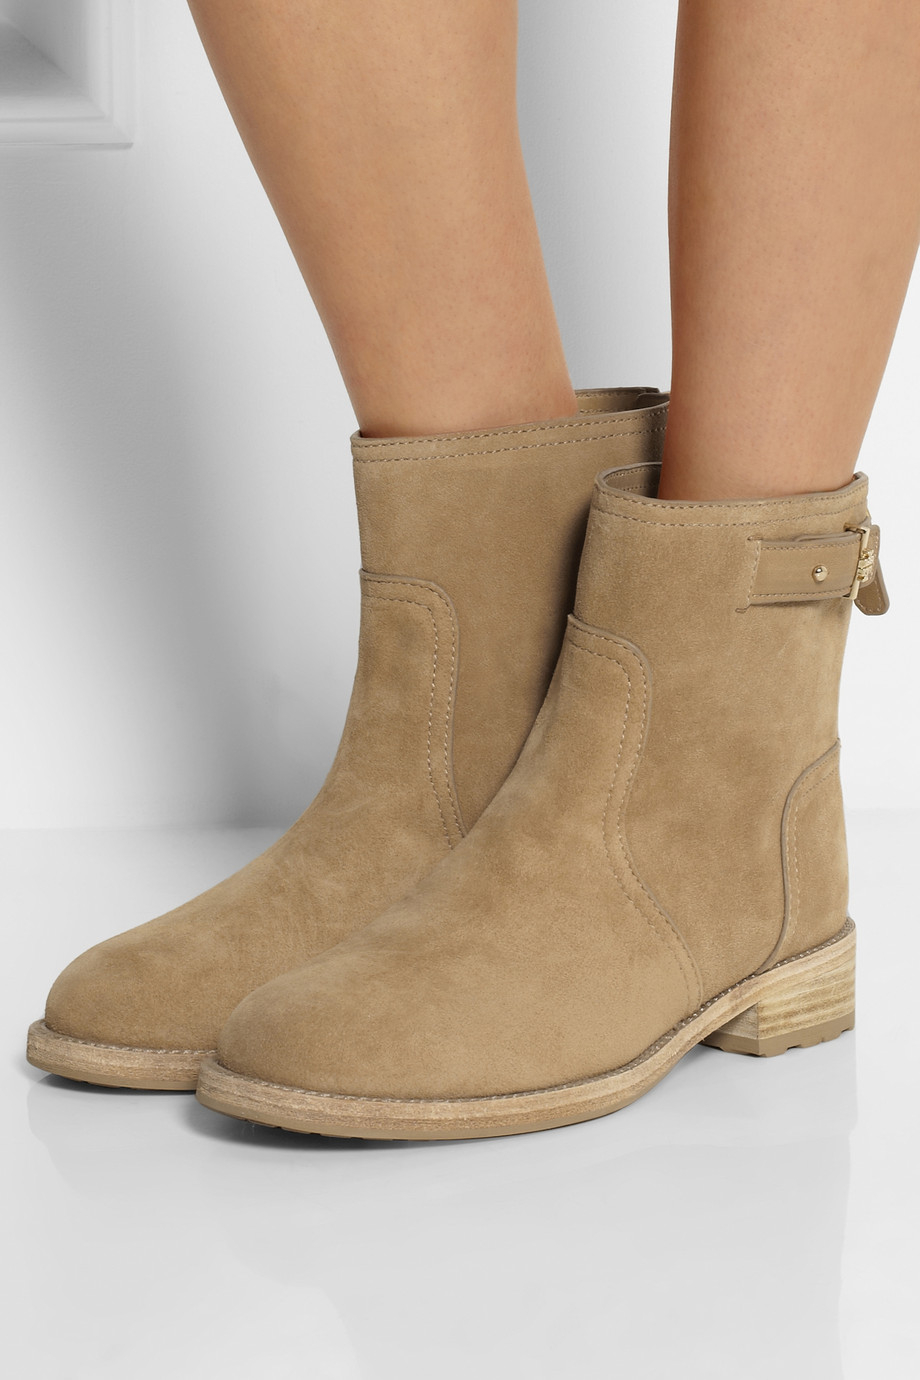 Tory Burch Selena Suede Ankle Boots In Brown Lyst